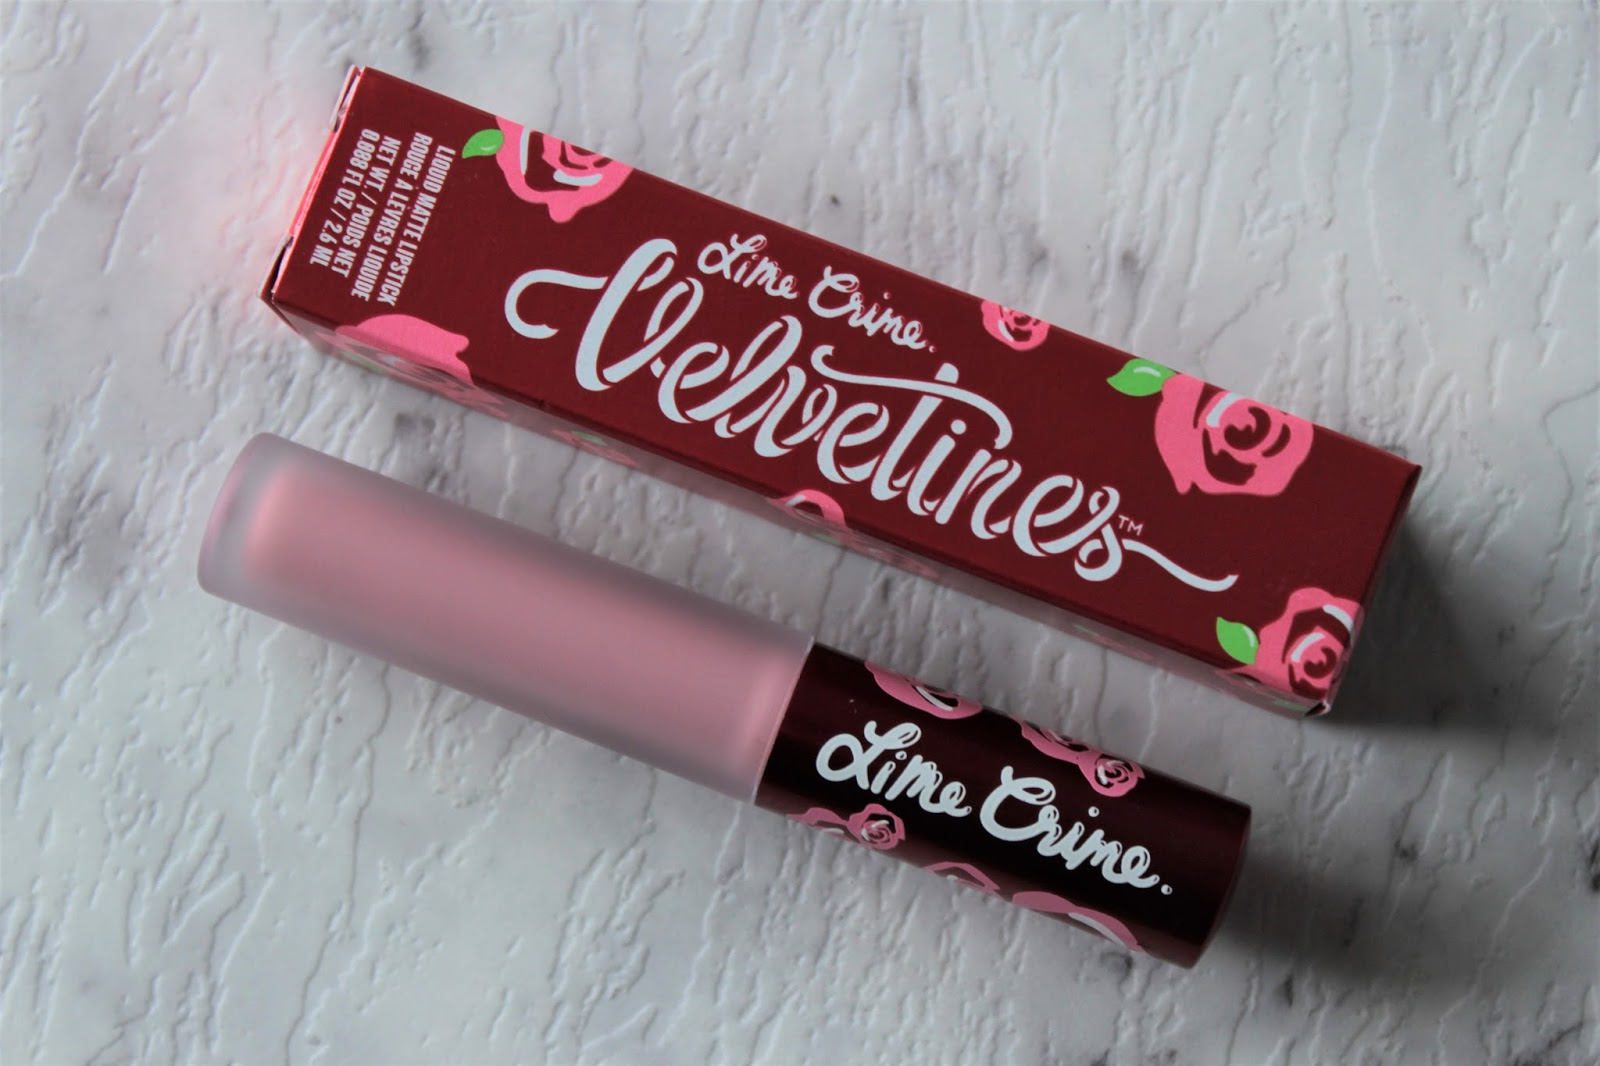 Imminent Beauty Lime Crime Velvetines Prairie Review Swatches All Shade Velvetine Lipstick Dupes